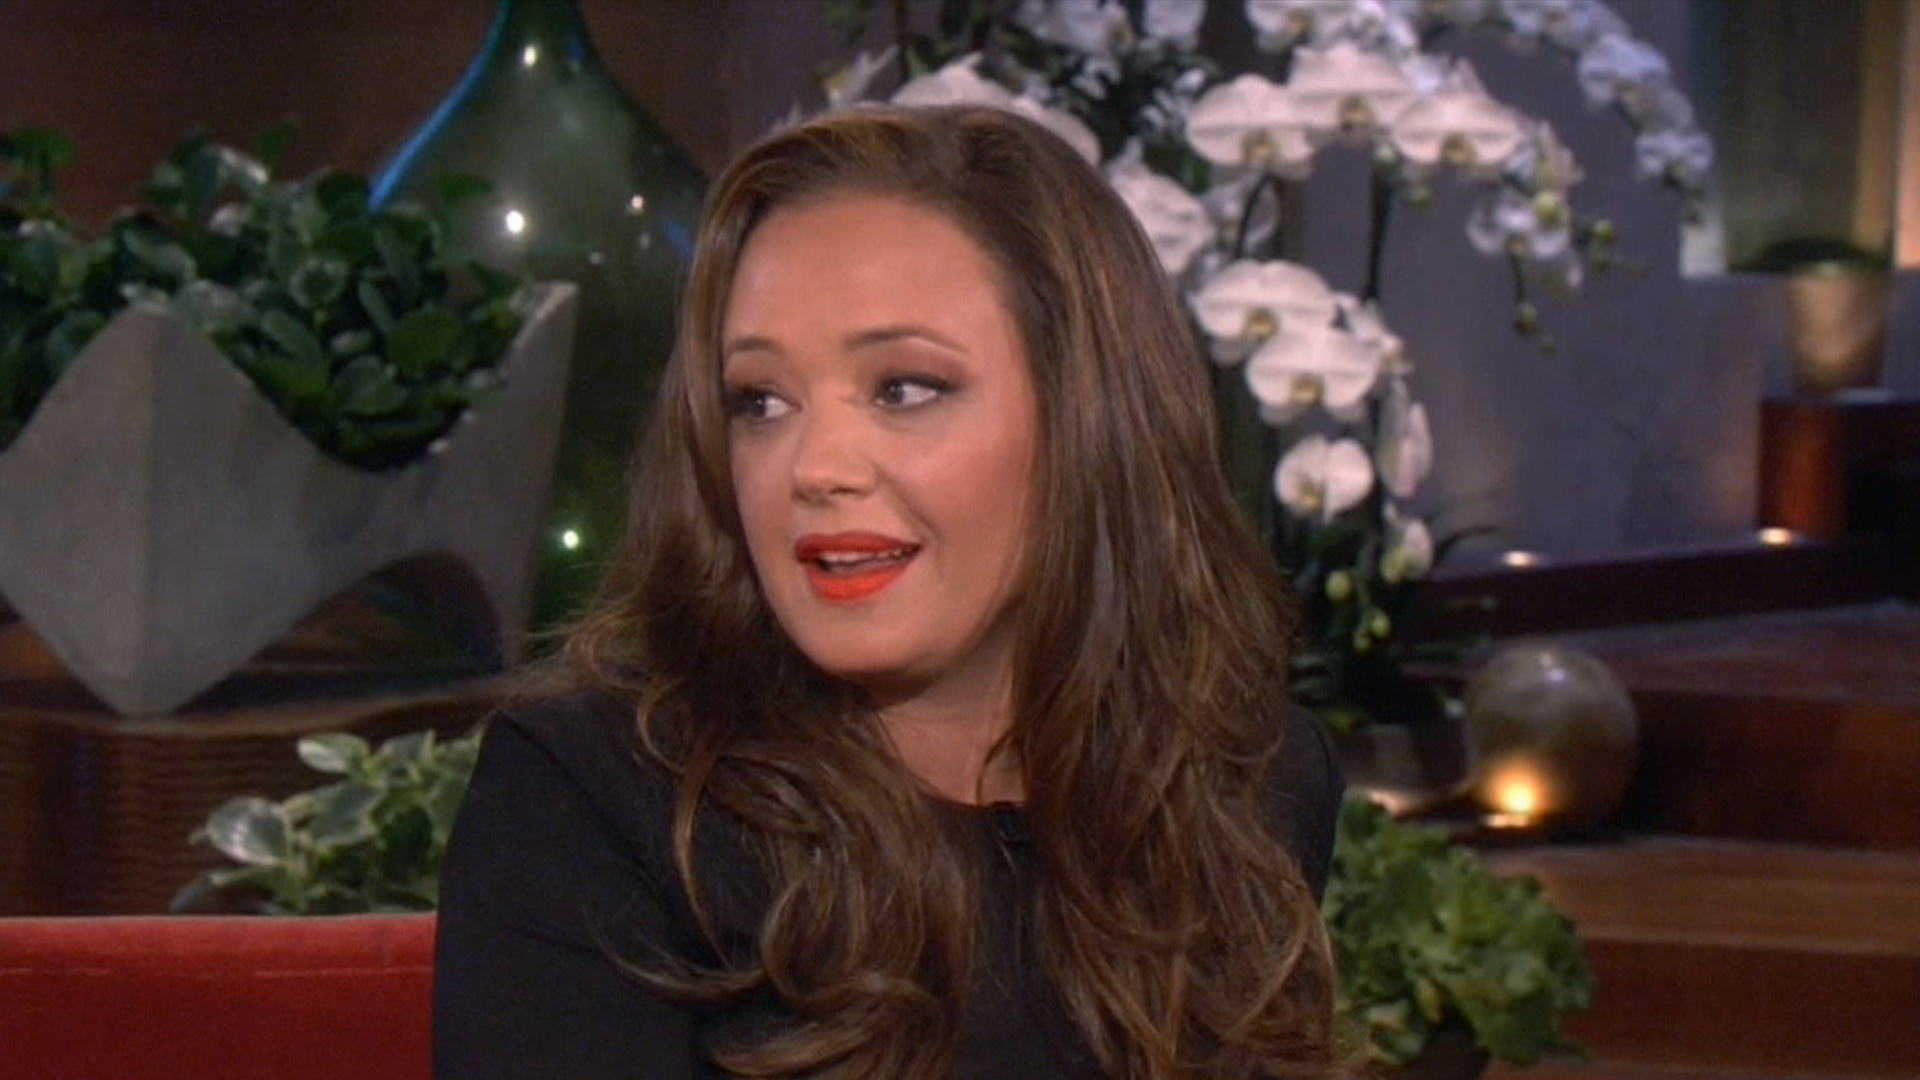 Leah Remini opens up on Ellen about hard split with